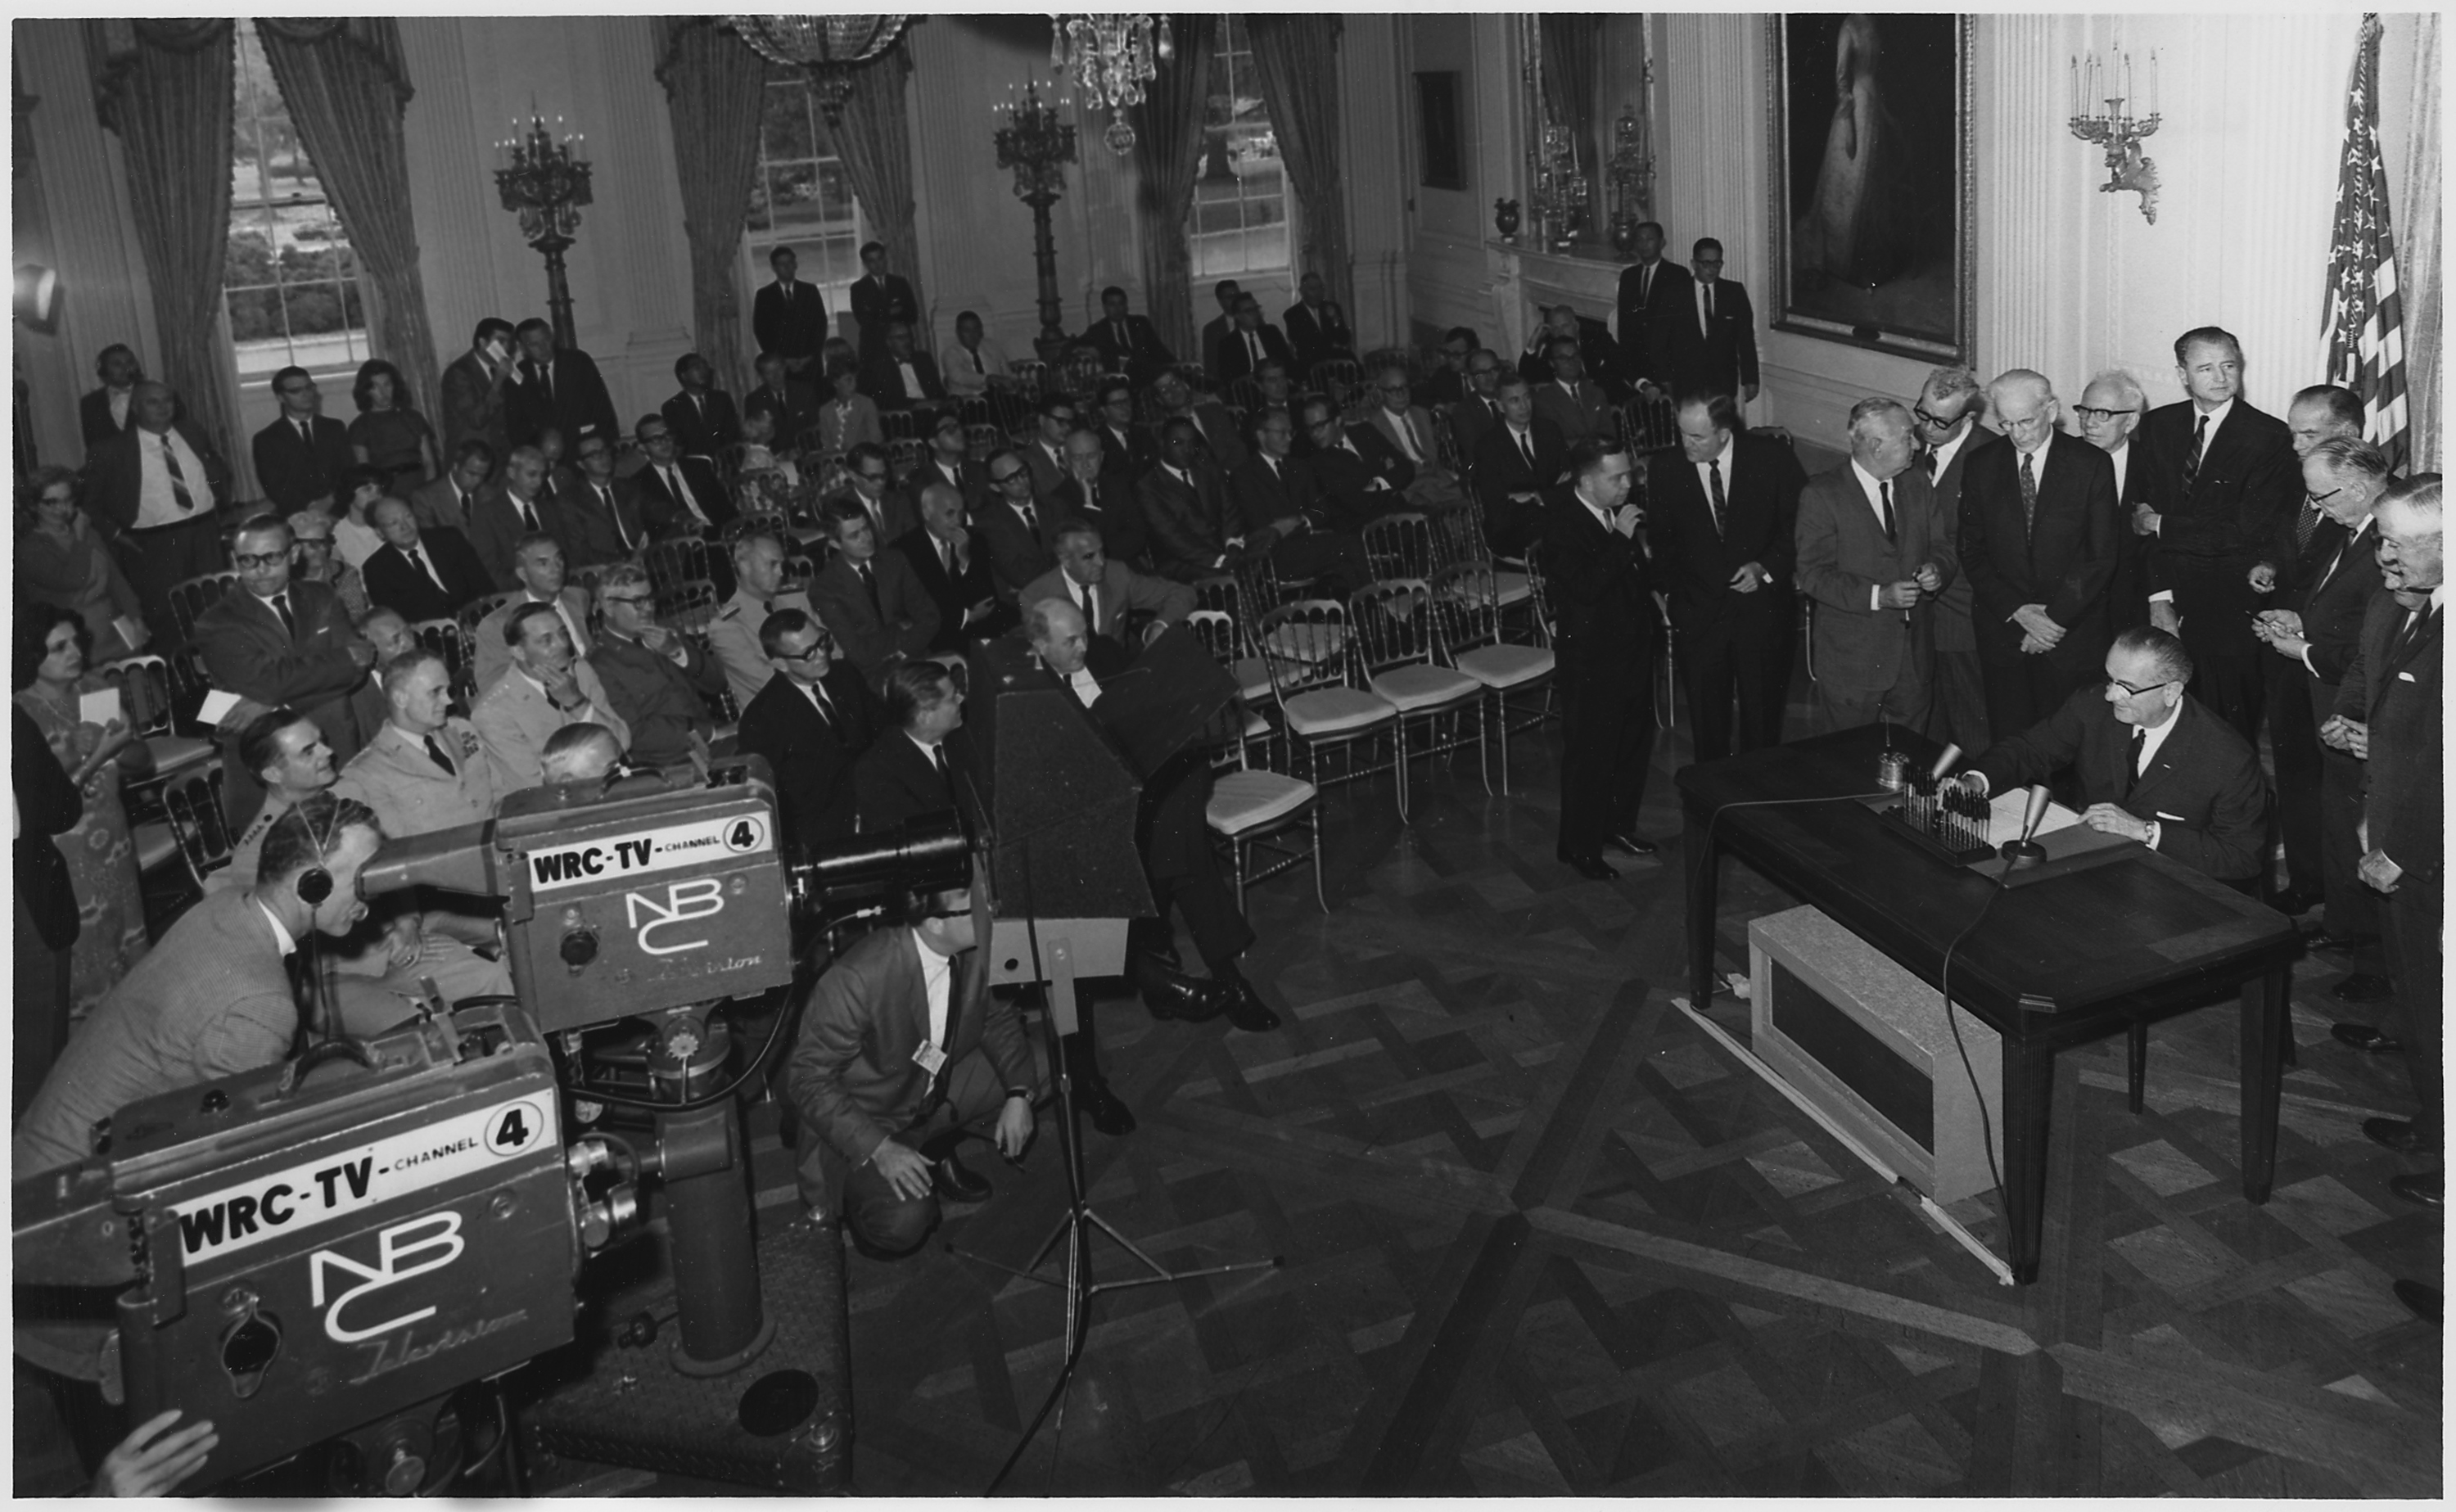 President Johnson signs the Gulf of Tonkin Resolution in the White House East Room as congressional leaders look on, August 10, 1964 (National Archives Identifier 192483)